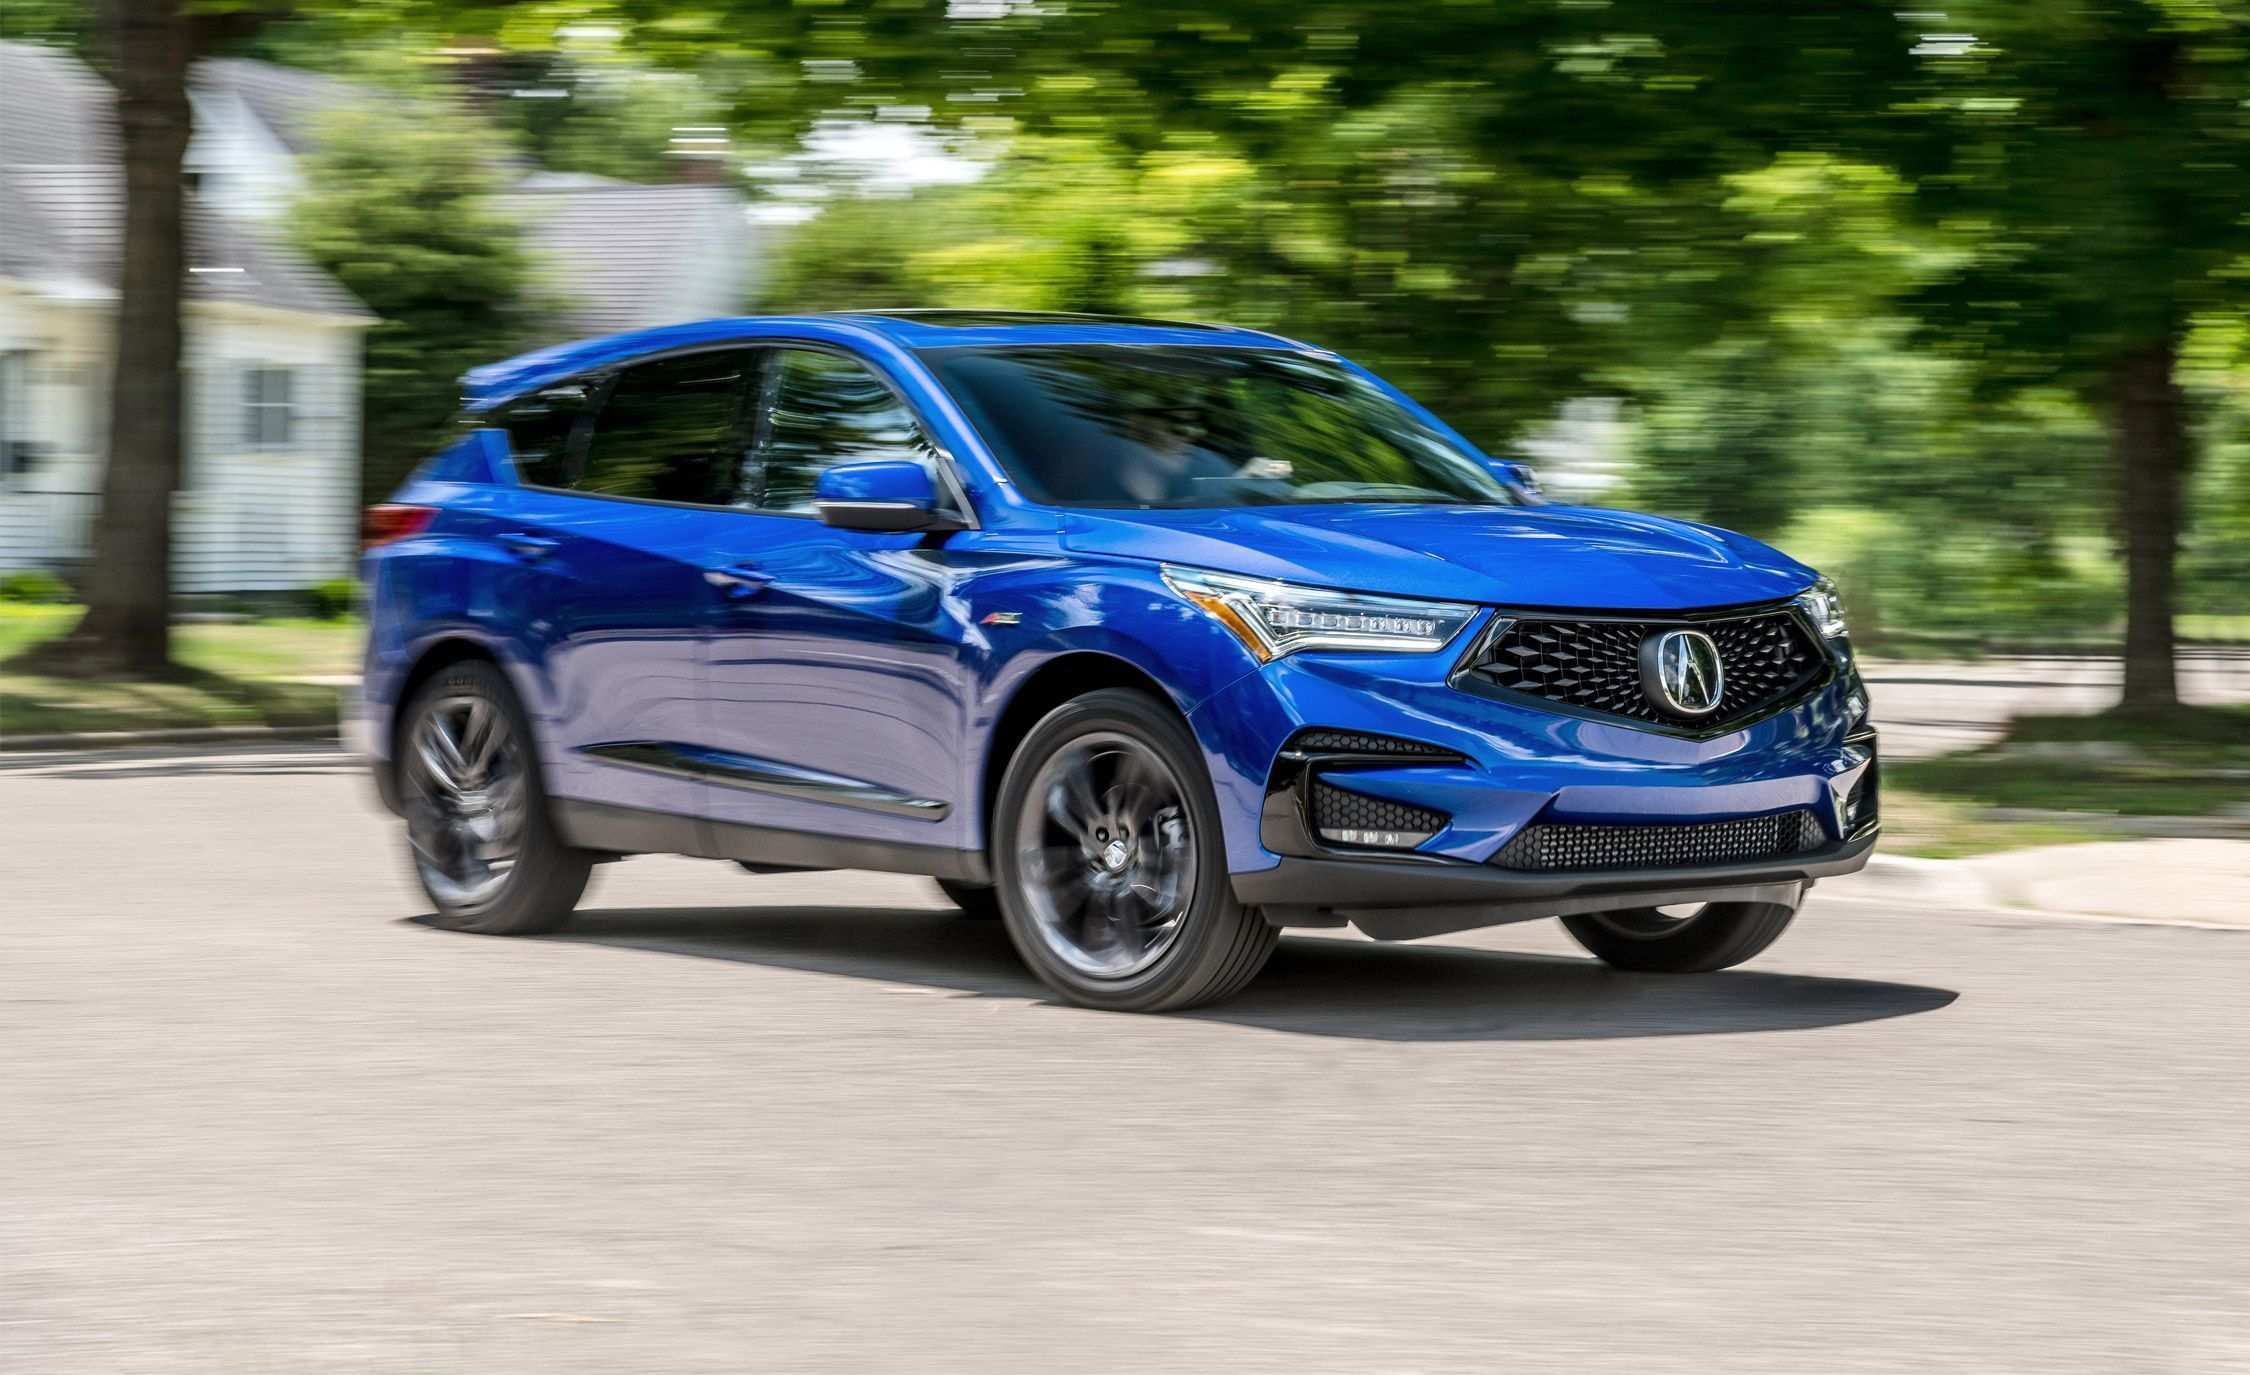 98 New New Acura Rdx 2019 First Drive Release Date And Specs Performance and New Engine for New Acura Rdx 2019 First Drive Release Date And Specs